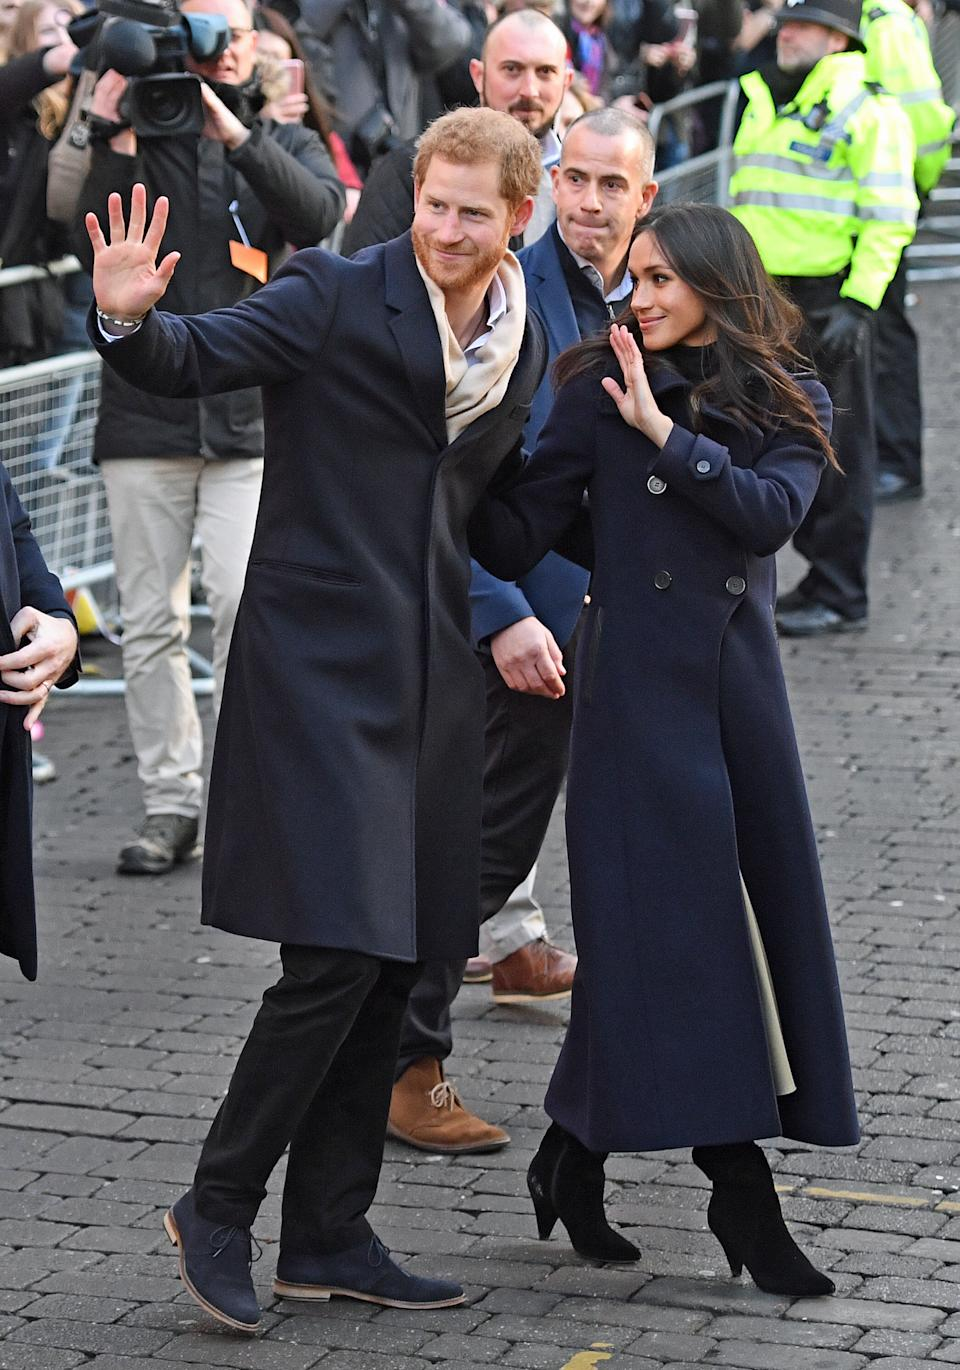 Meghan Markle opted for a pair of boots from Kurt Geiger during a visit to Nottingham with Prince Harry in 2017. (Getty Images)